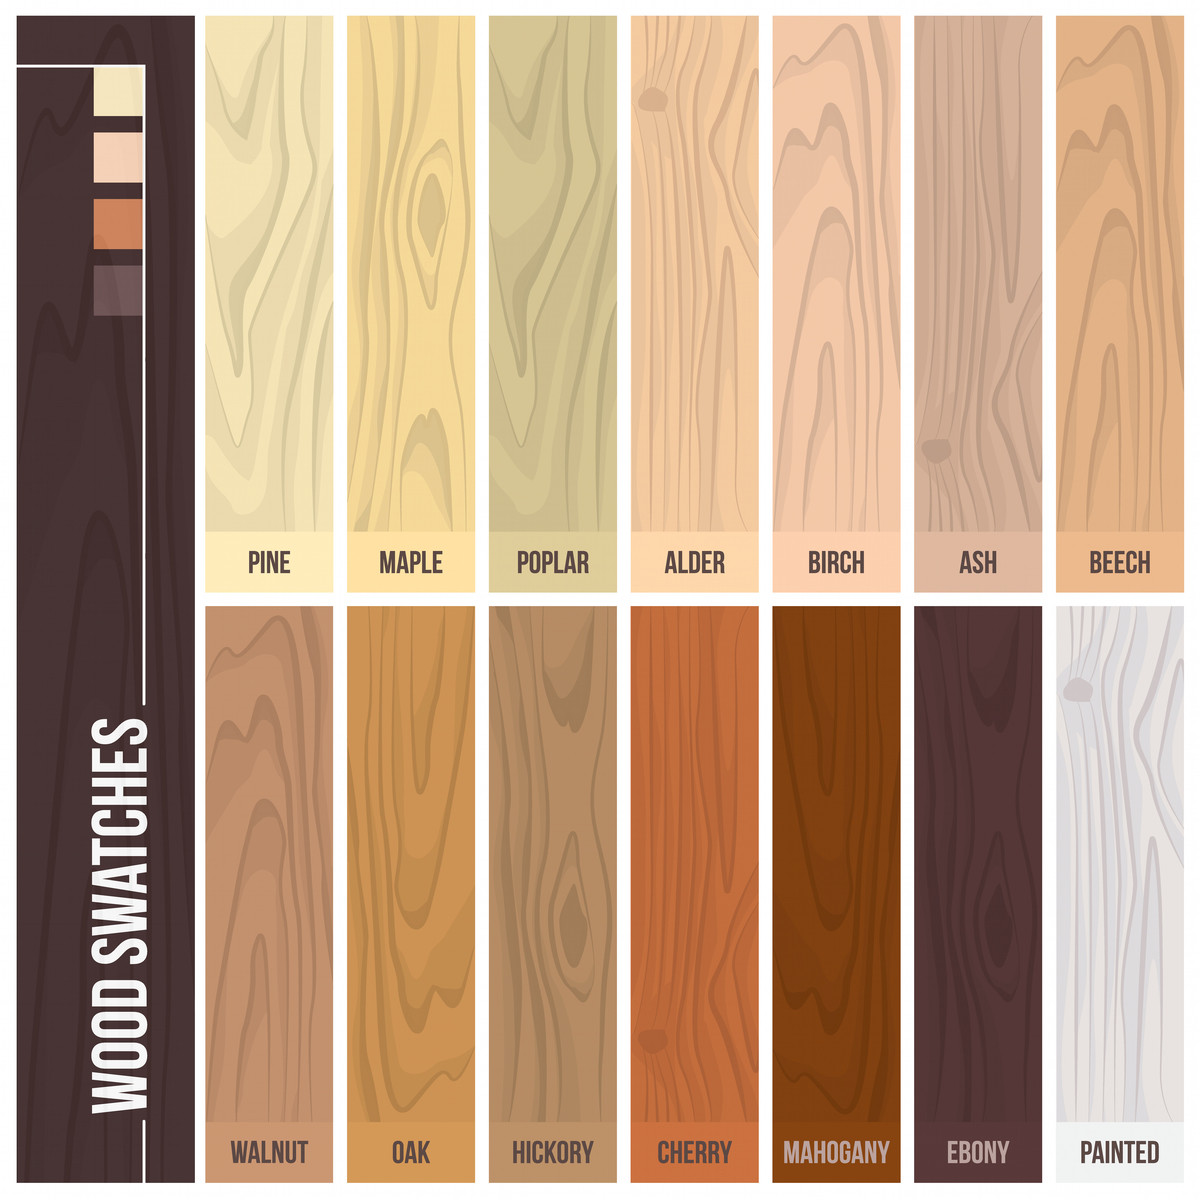 popular hardwood flooring 2016 of 12 types of hardwood flooring species styles edging dimensions in types of hardwood flooring illustrated guide